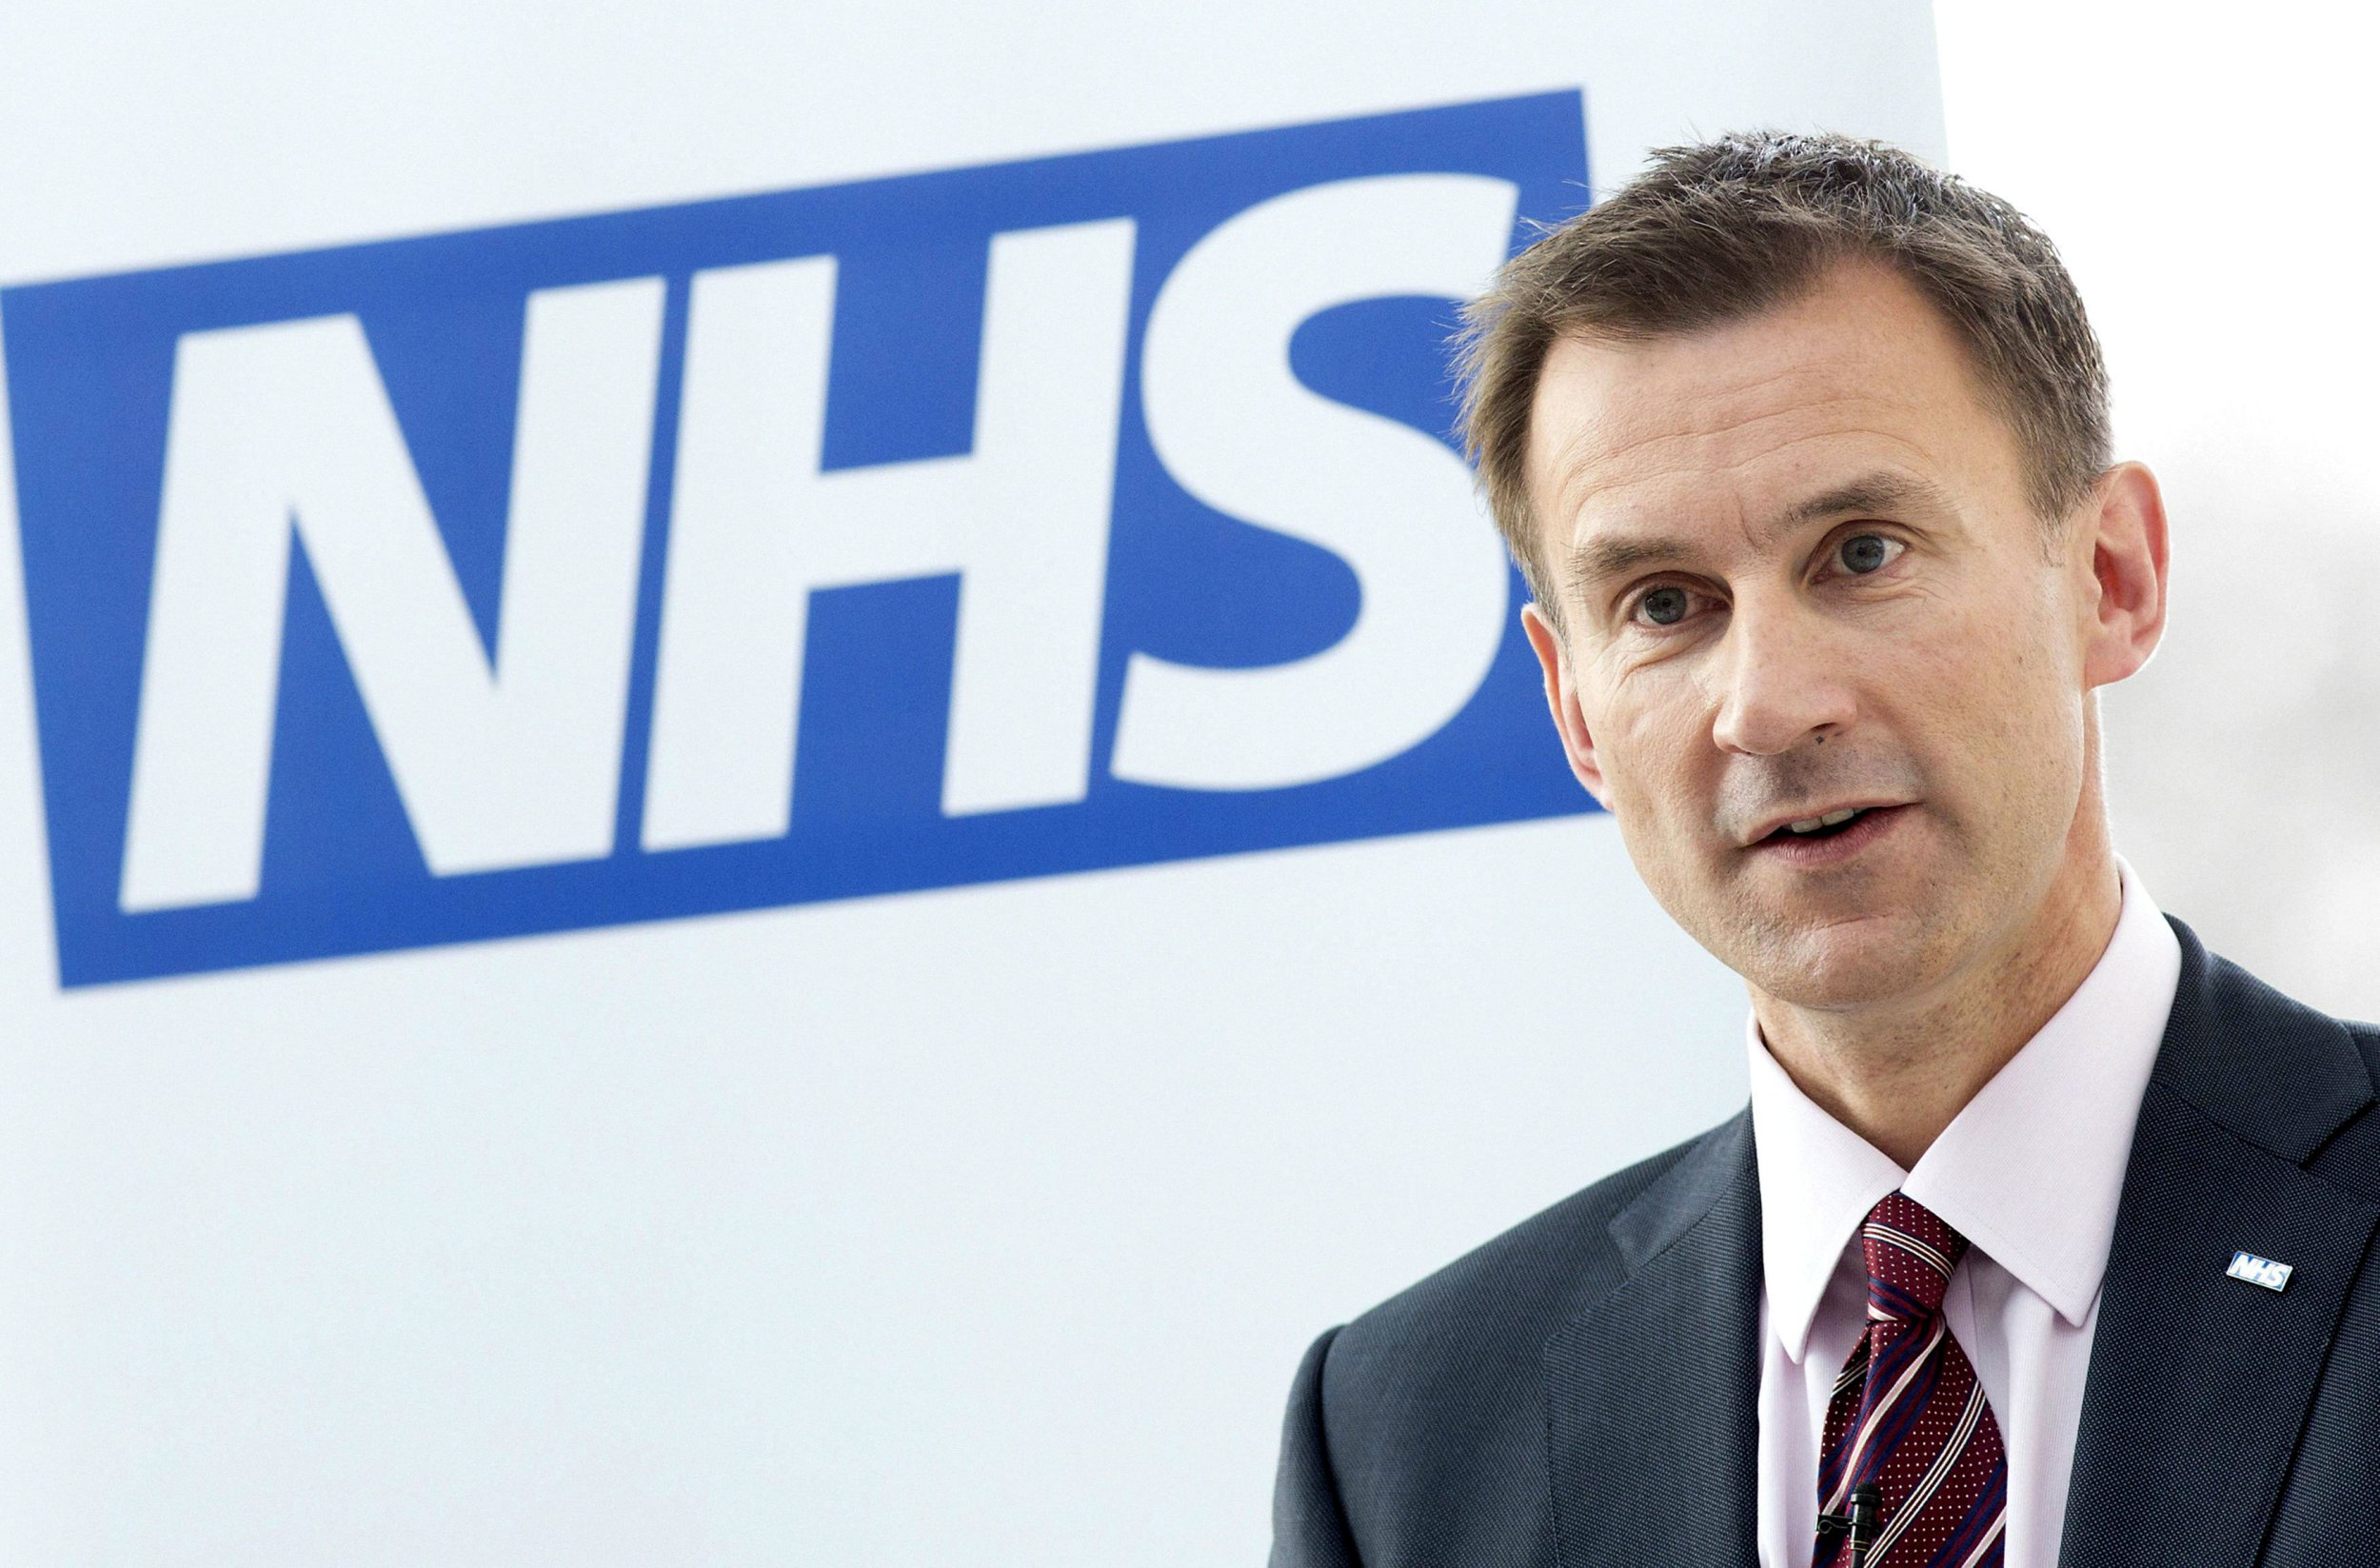 NHS app being tested 'to mark death knell for 8am appointment calls'